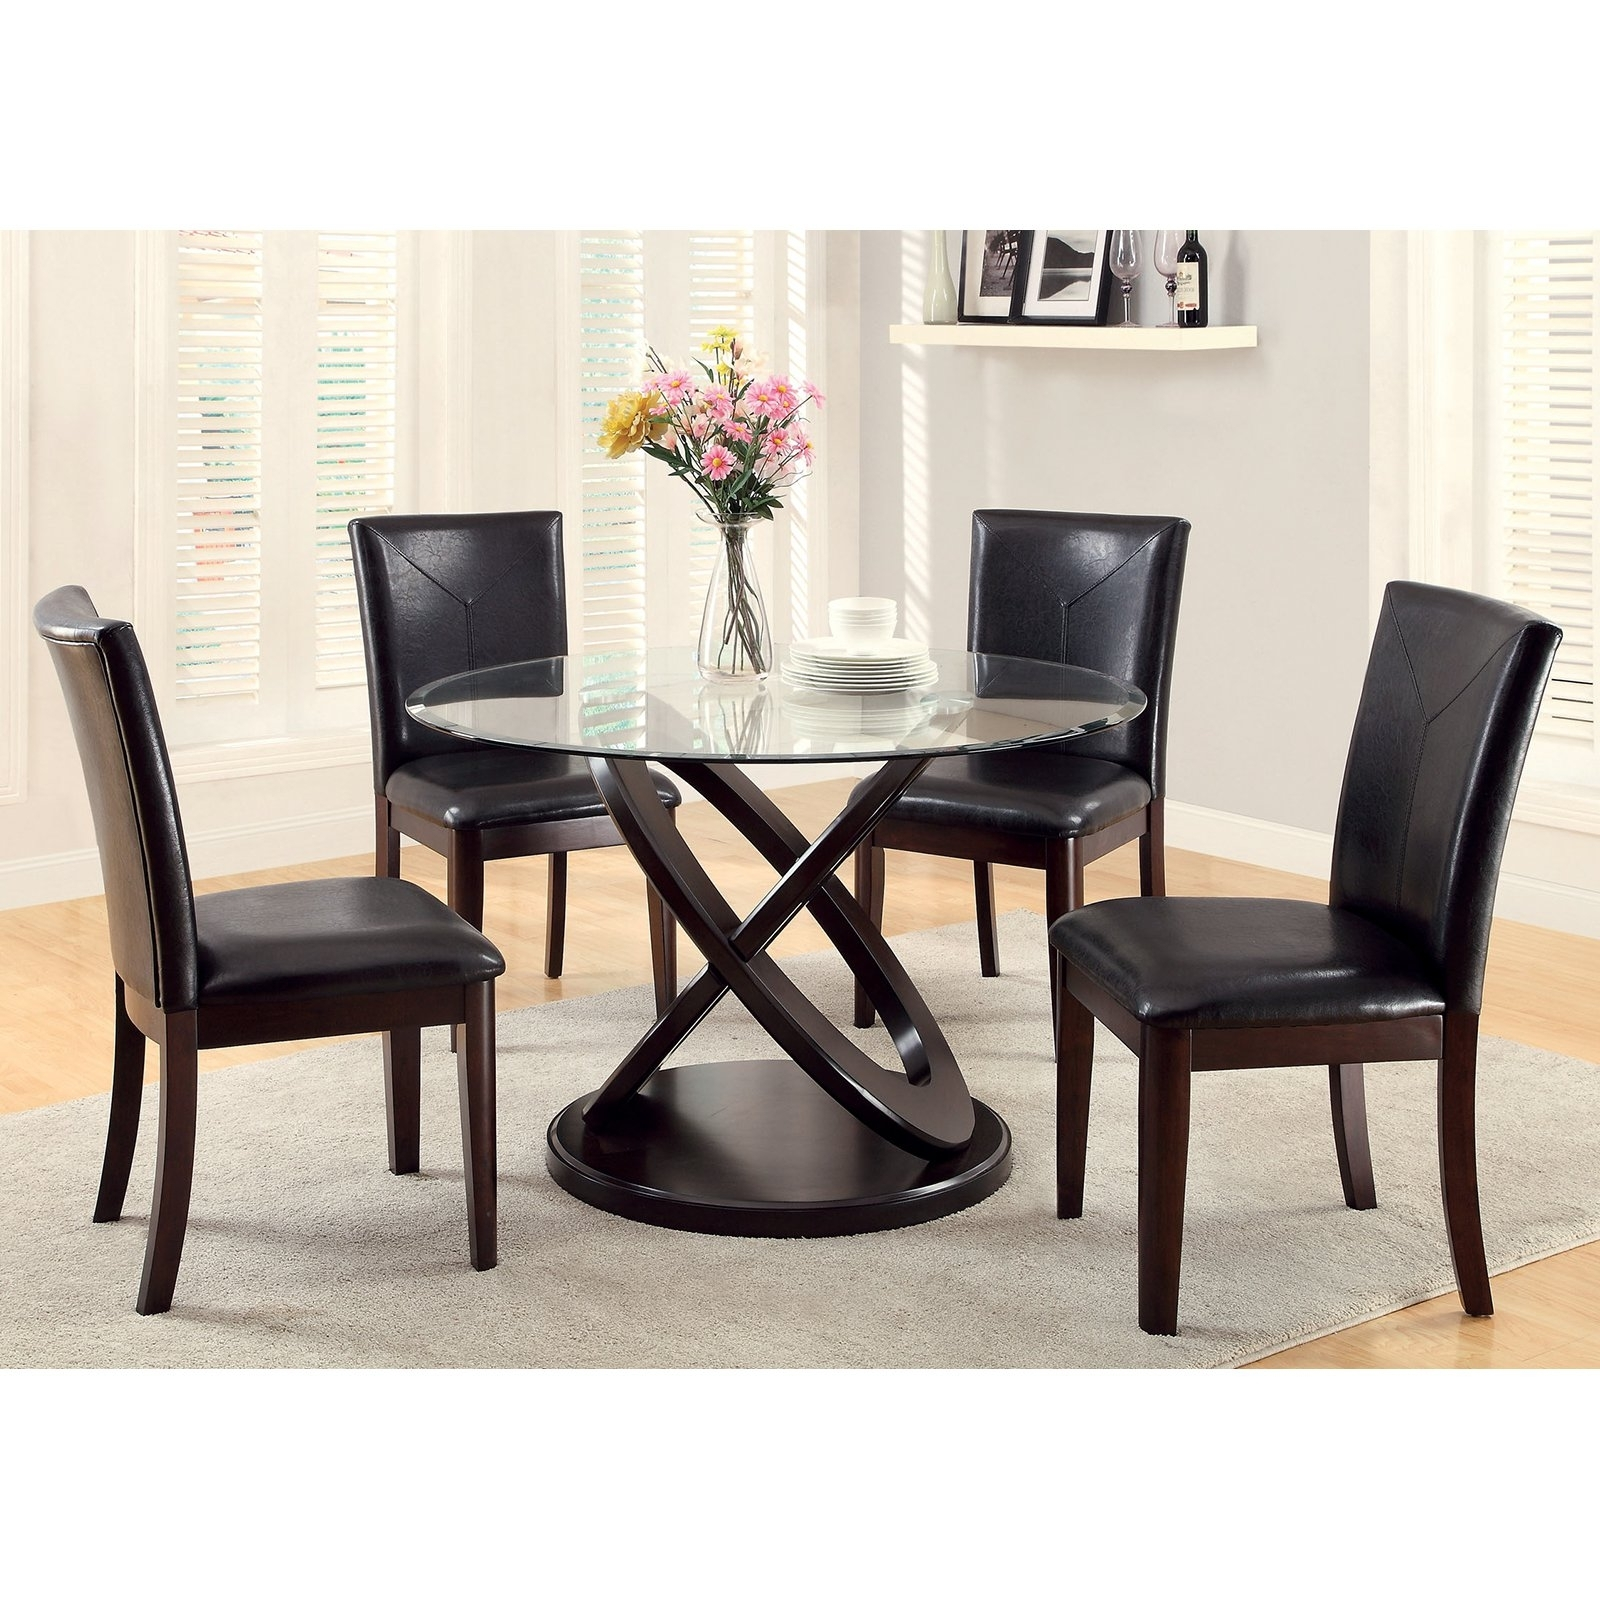 Latest Round Black Glass Dining Tables And Chairs Pertaining To Glamorous Black Glass Round Dining Table And Chairs For Stowaway (View 3 of 25)